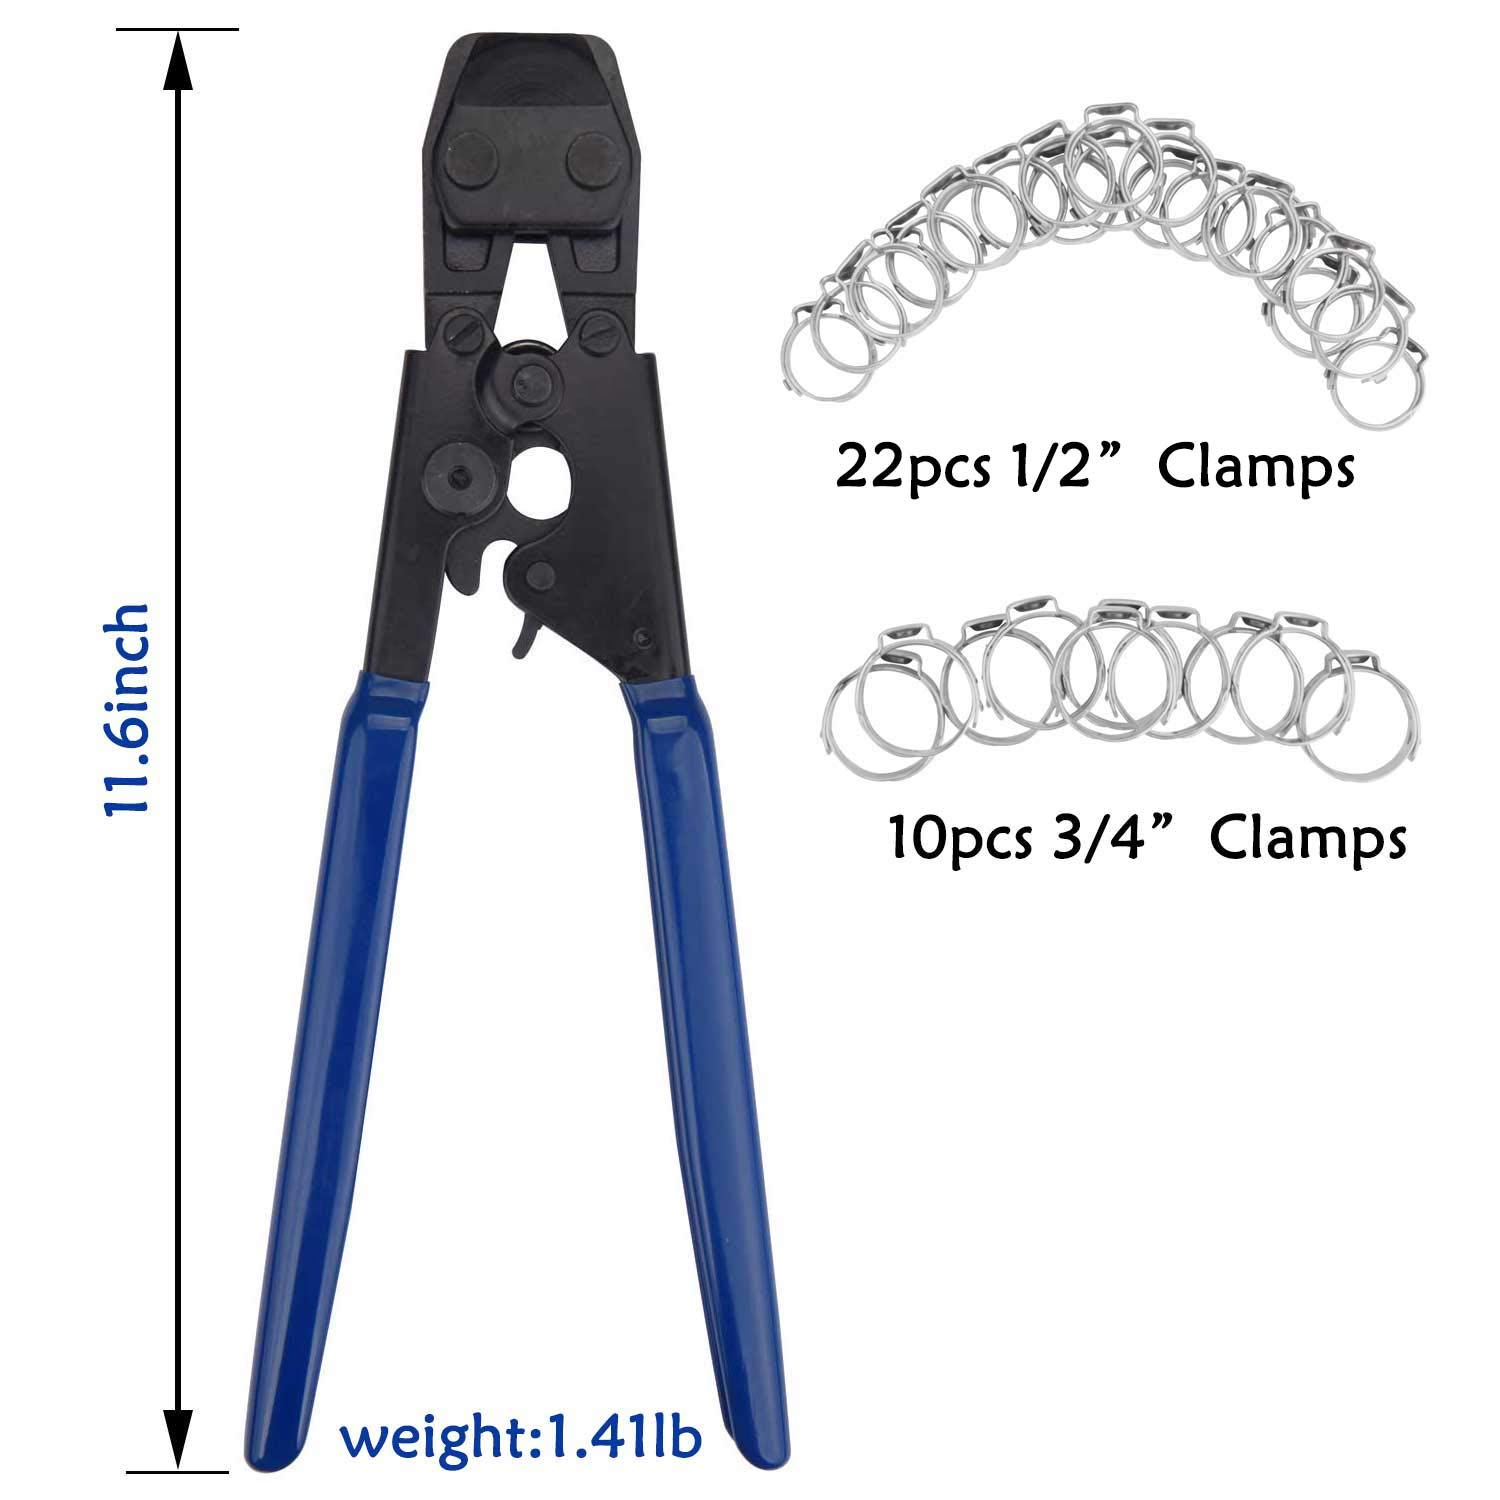 DUSICHIN DUS-501 PEX Crimping Tools Cinch Clamp Tools for Fastening Stainless Clamps Sizes from 3/8 Inch - 1 inch with 1/2'' 22PCS and 3/4'' 10PCS SS PEX Clamps by DUSICHIN